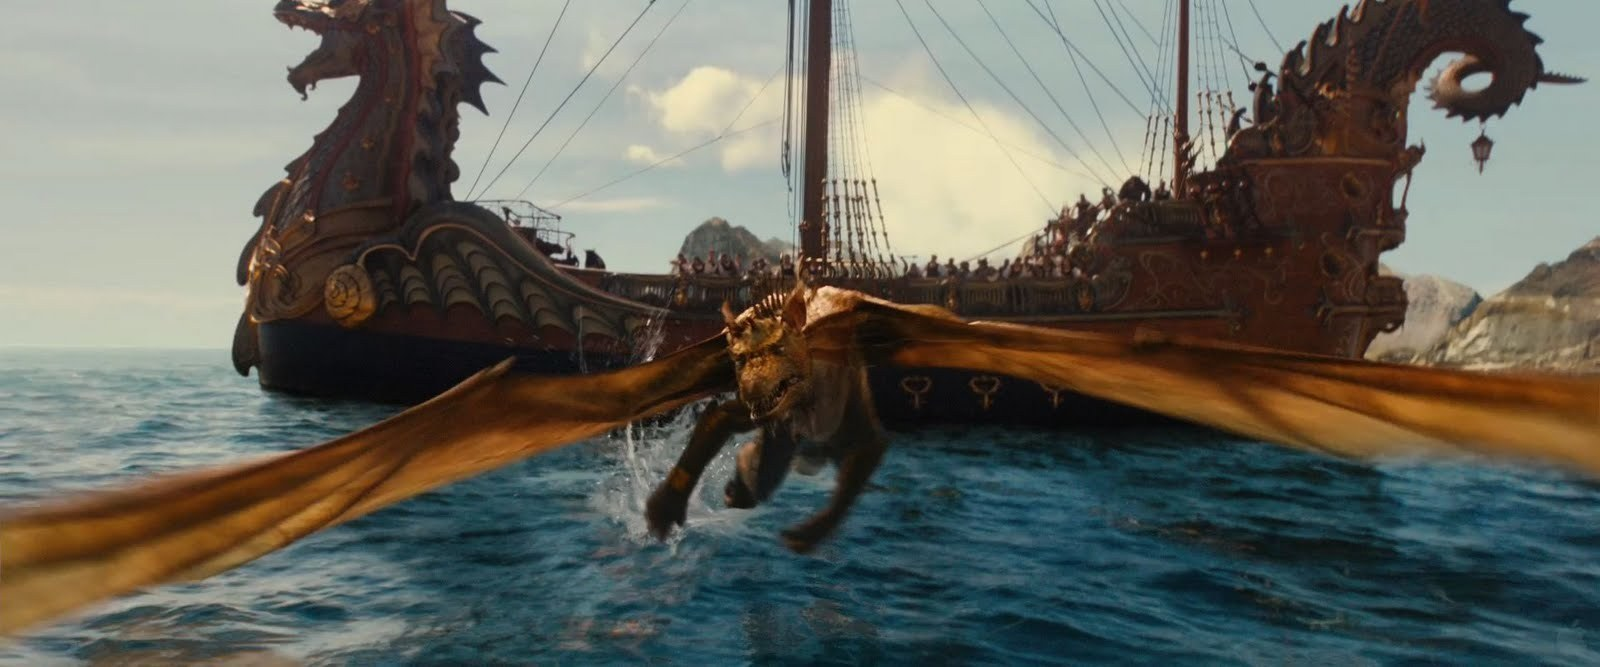 the voyage of the dawn treader images dawn treader and dragon hd